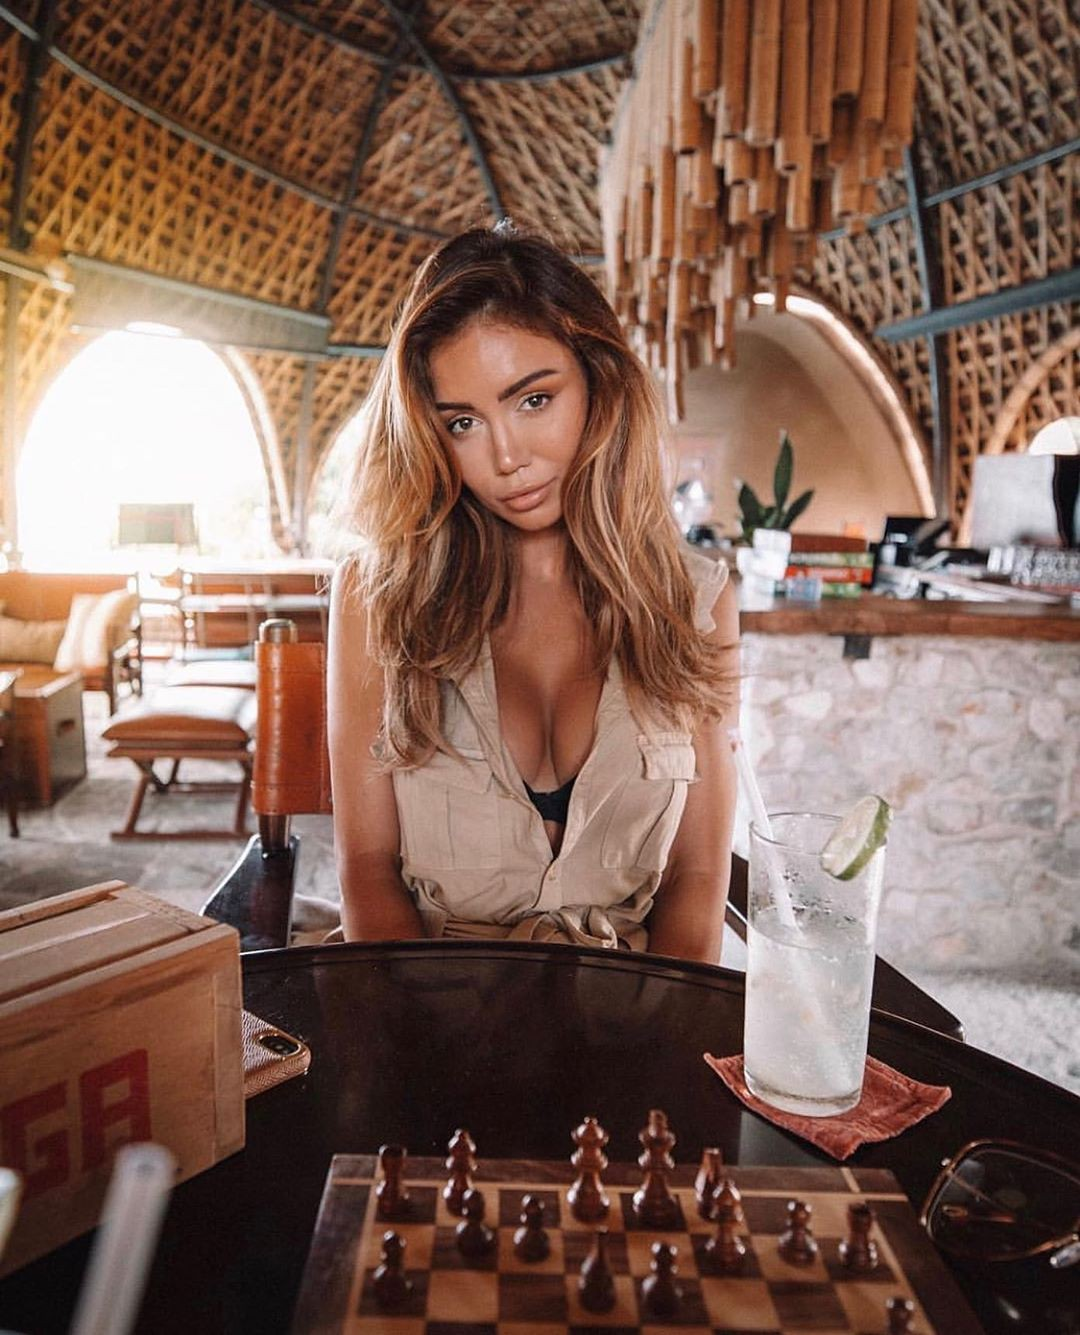 Pia Muehlenbeck Long Hair Girl, indoor games and sports, board game